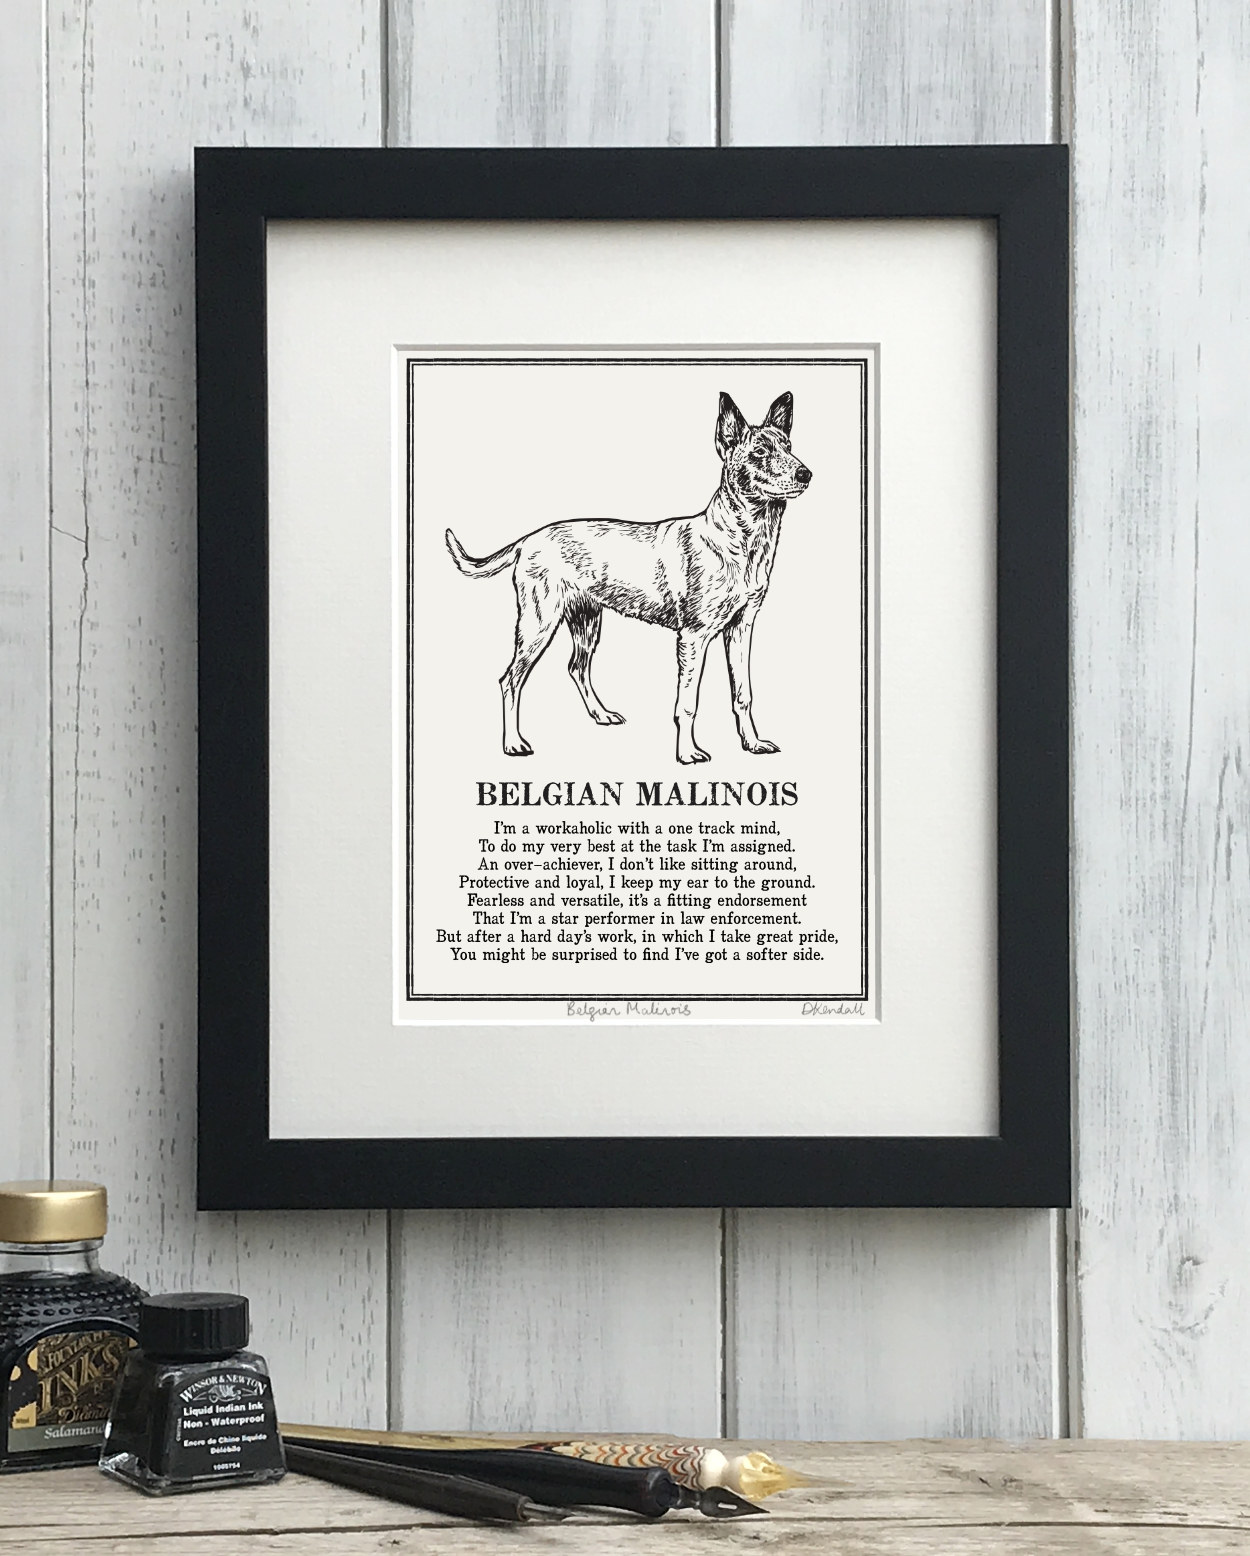 Belgian Malinois Doggerel Illustrated Poem Art Print | The Enlightened Hound